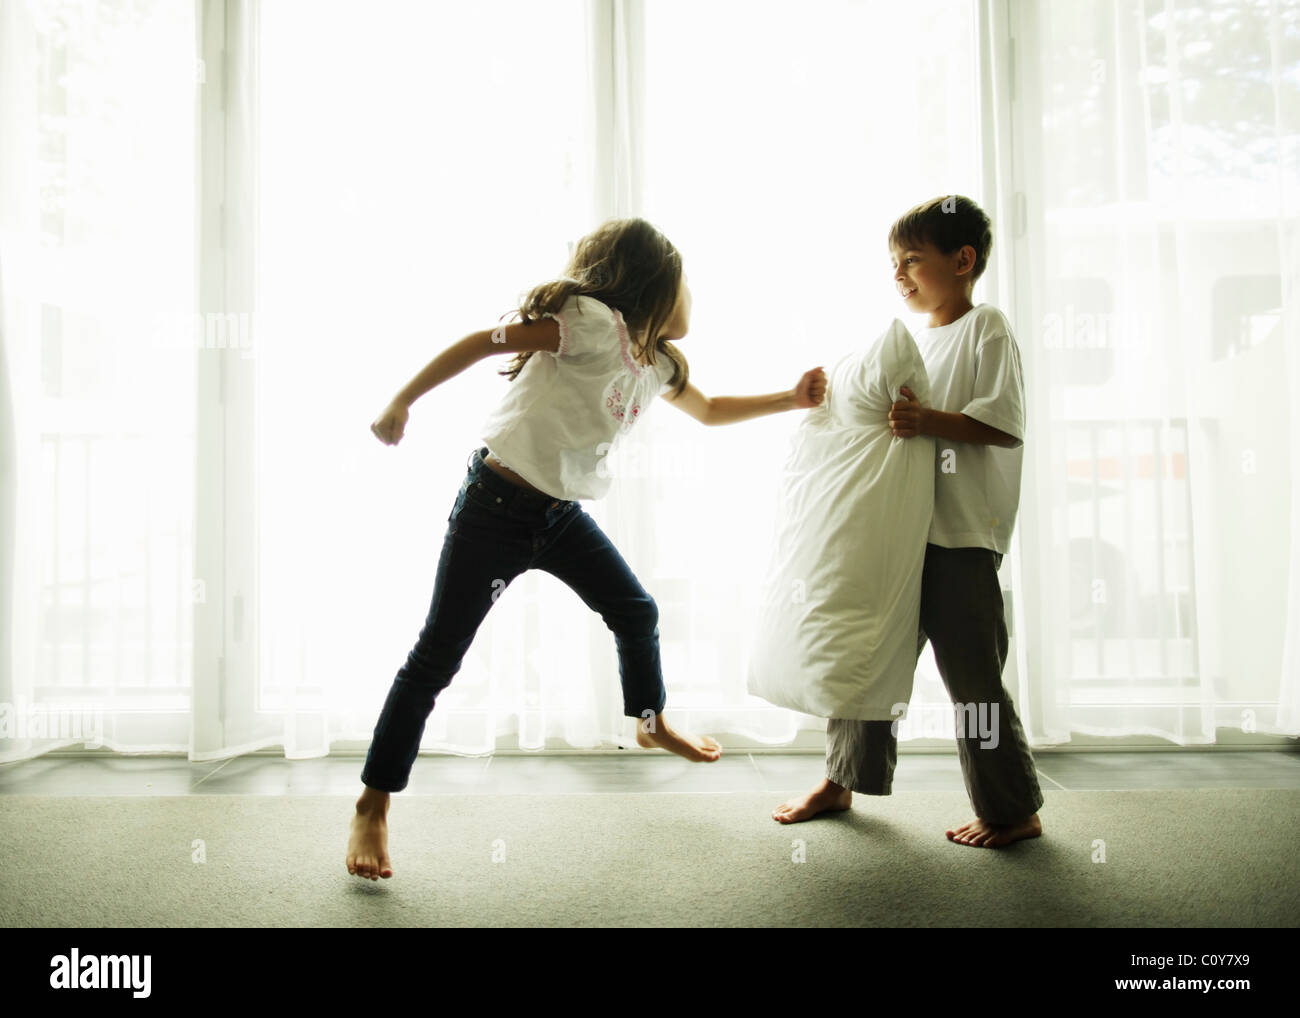 Boy holds pillow as punchbag for his kung fu sister. - Stock Image